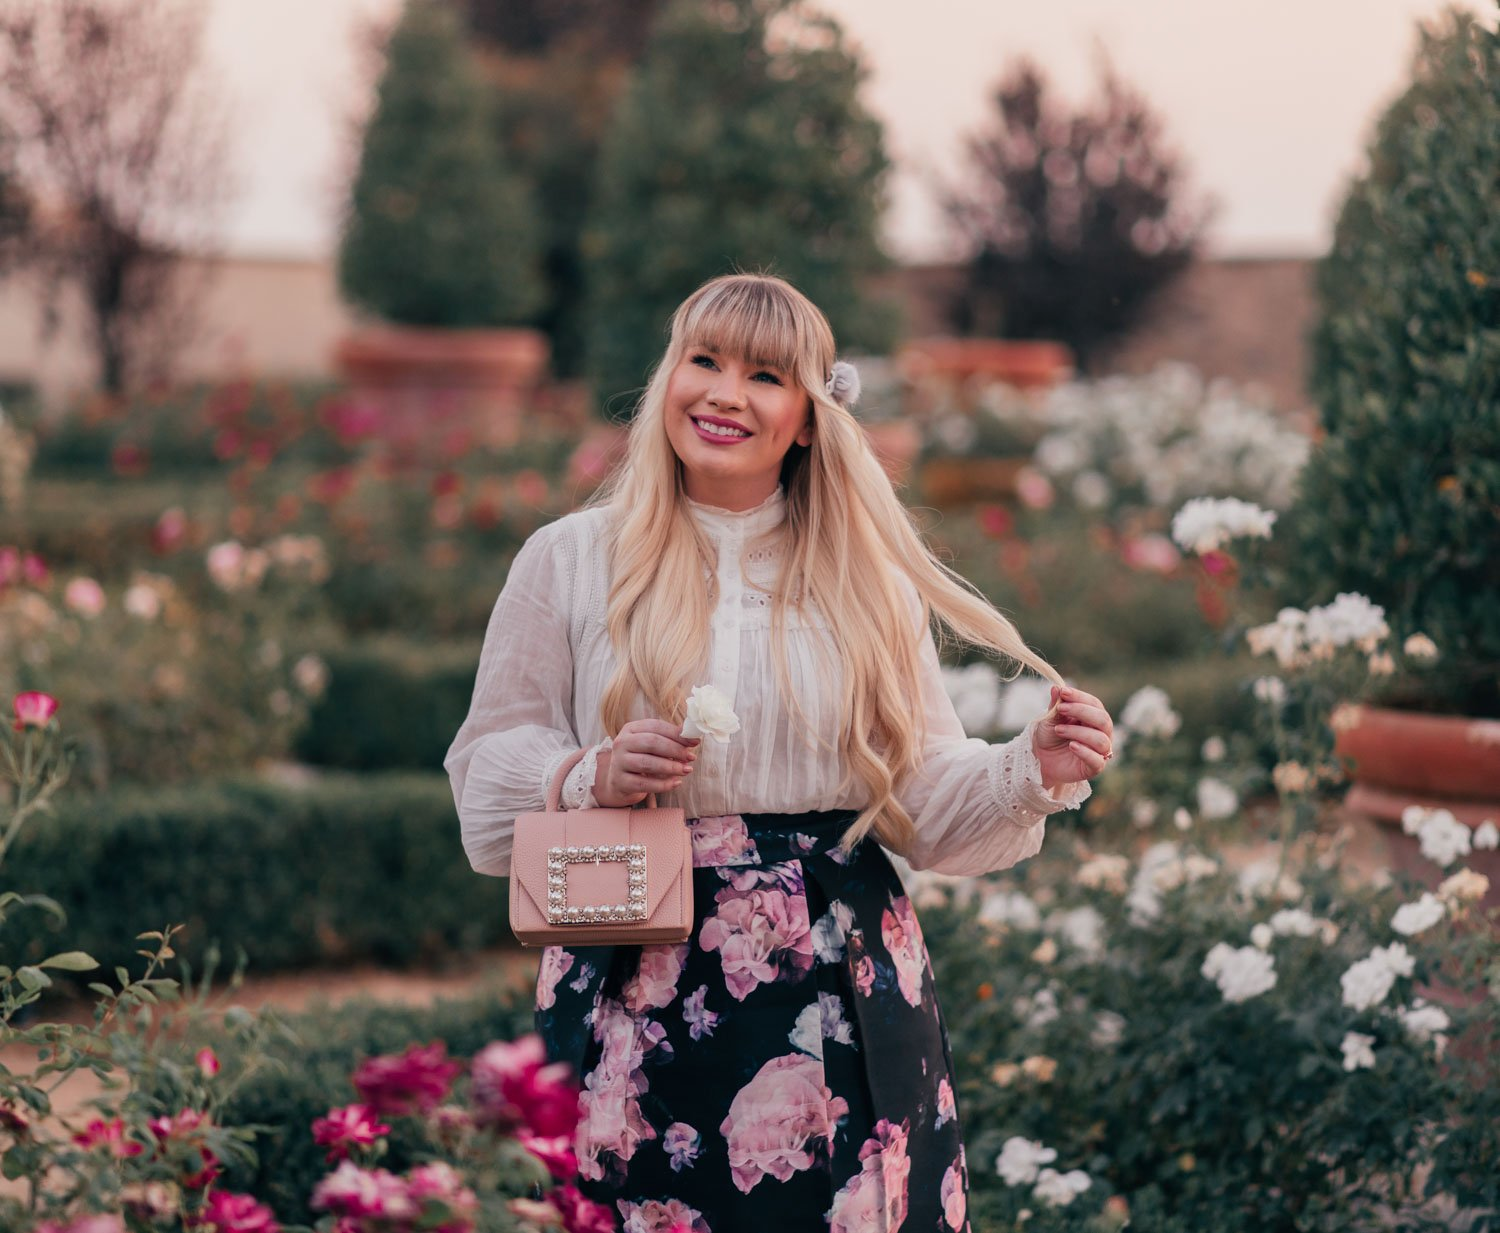 Fashion blogger Elizabeth Hugen of Lizzie in Lace shares her October 2020 Month in Review along with a feminine fall outfit including a BA&SH top and Alexandre de Paris hair accessory